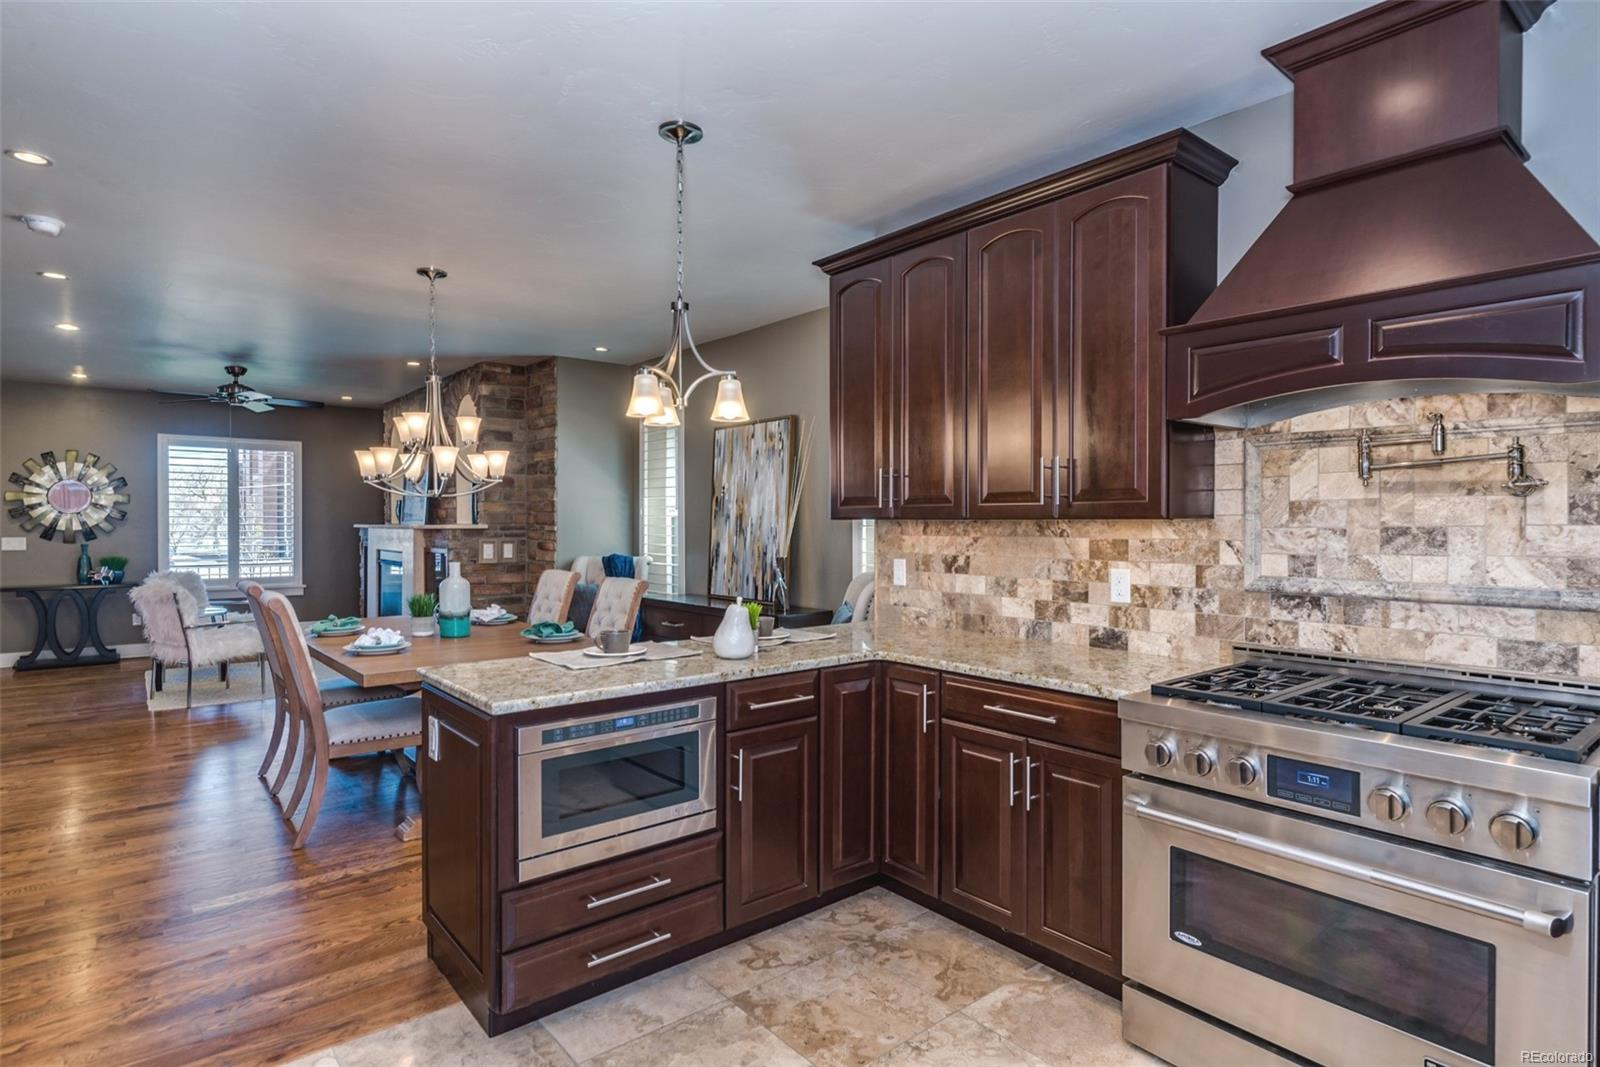 THE NEW KITCHEN IS DESIGNED WITH THE GOURMET COOK IN MIND!